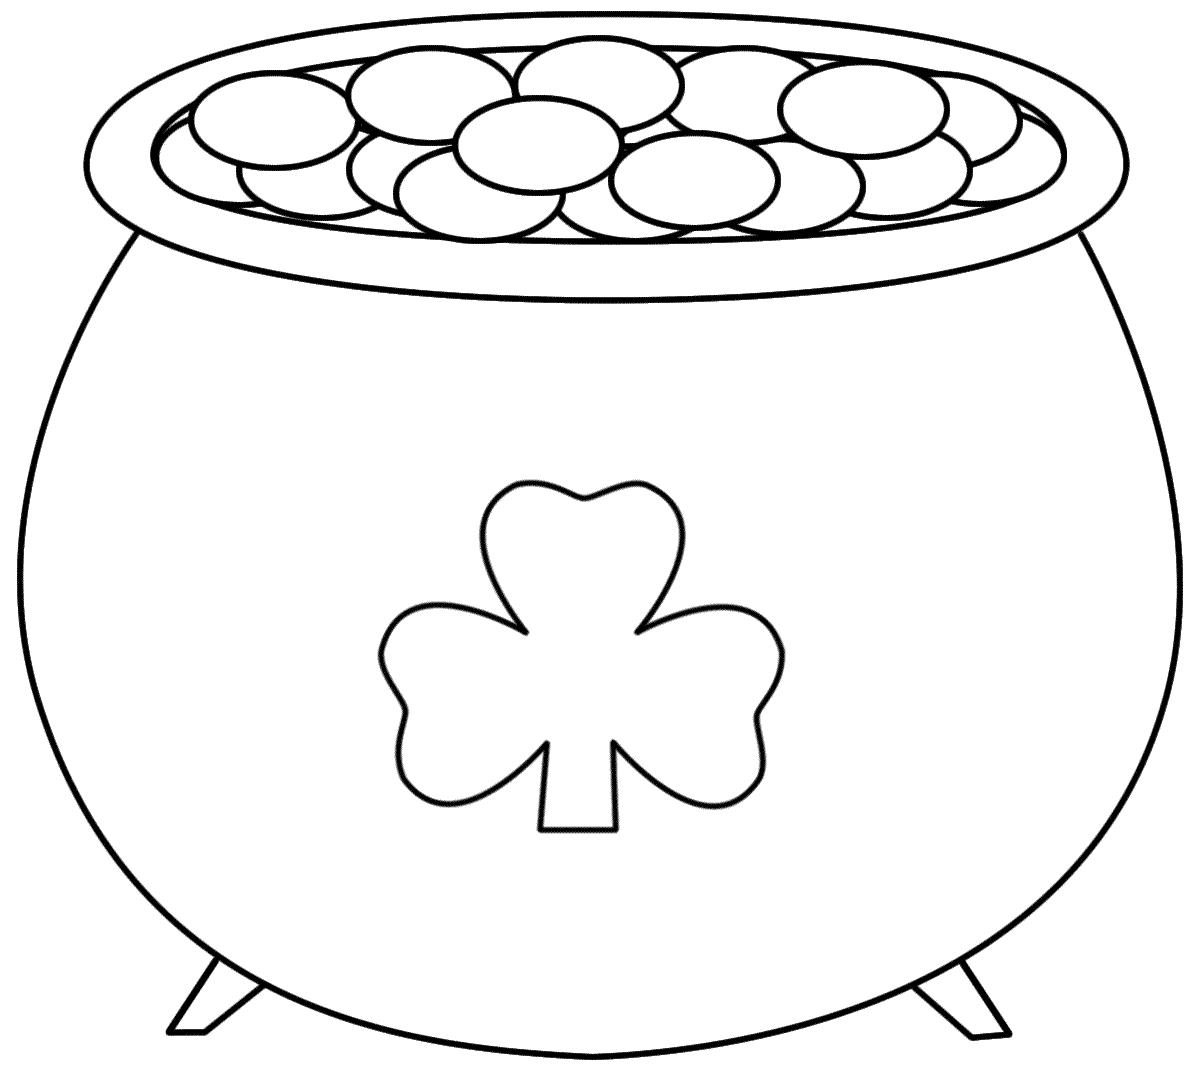 Pot+Of+Gold+Printable   Pot Of Gold - Coloring Pages   Saint - Free Printable Pot Of Gold Coloring Pages